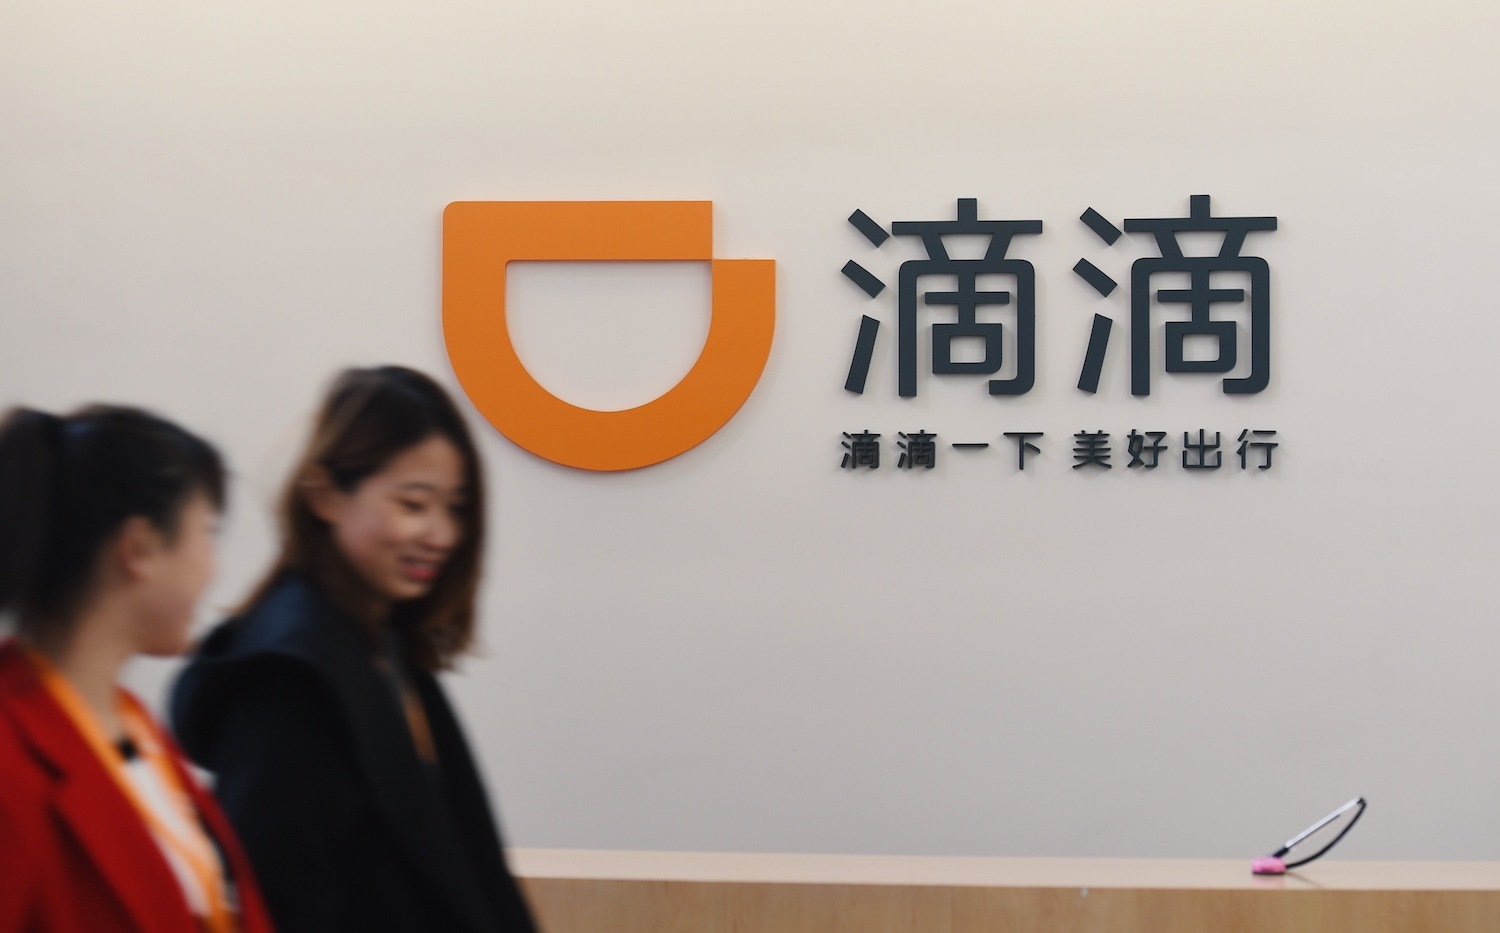 Didi opens platform to rival firms as competition heats up